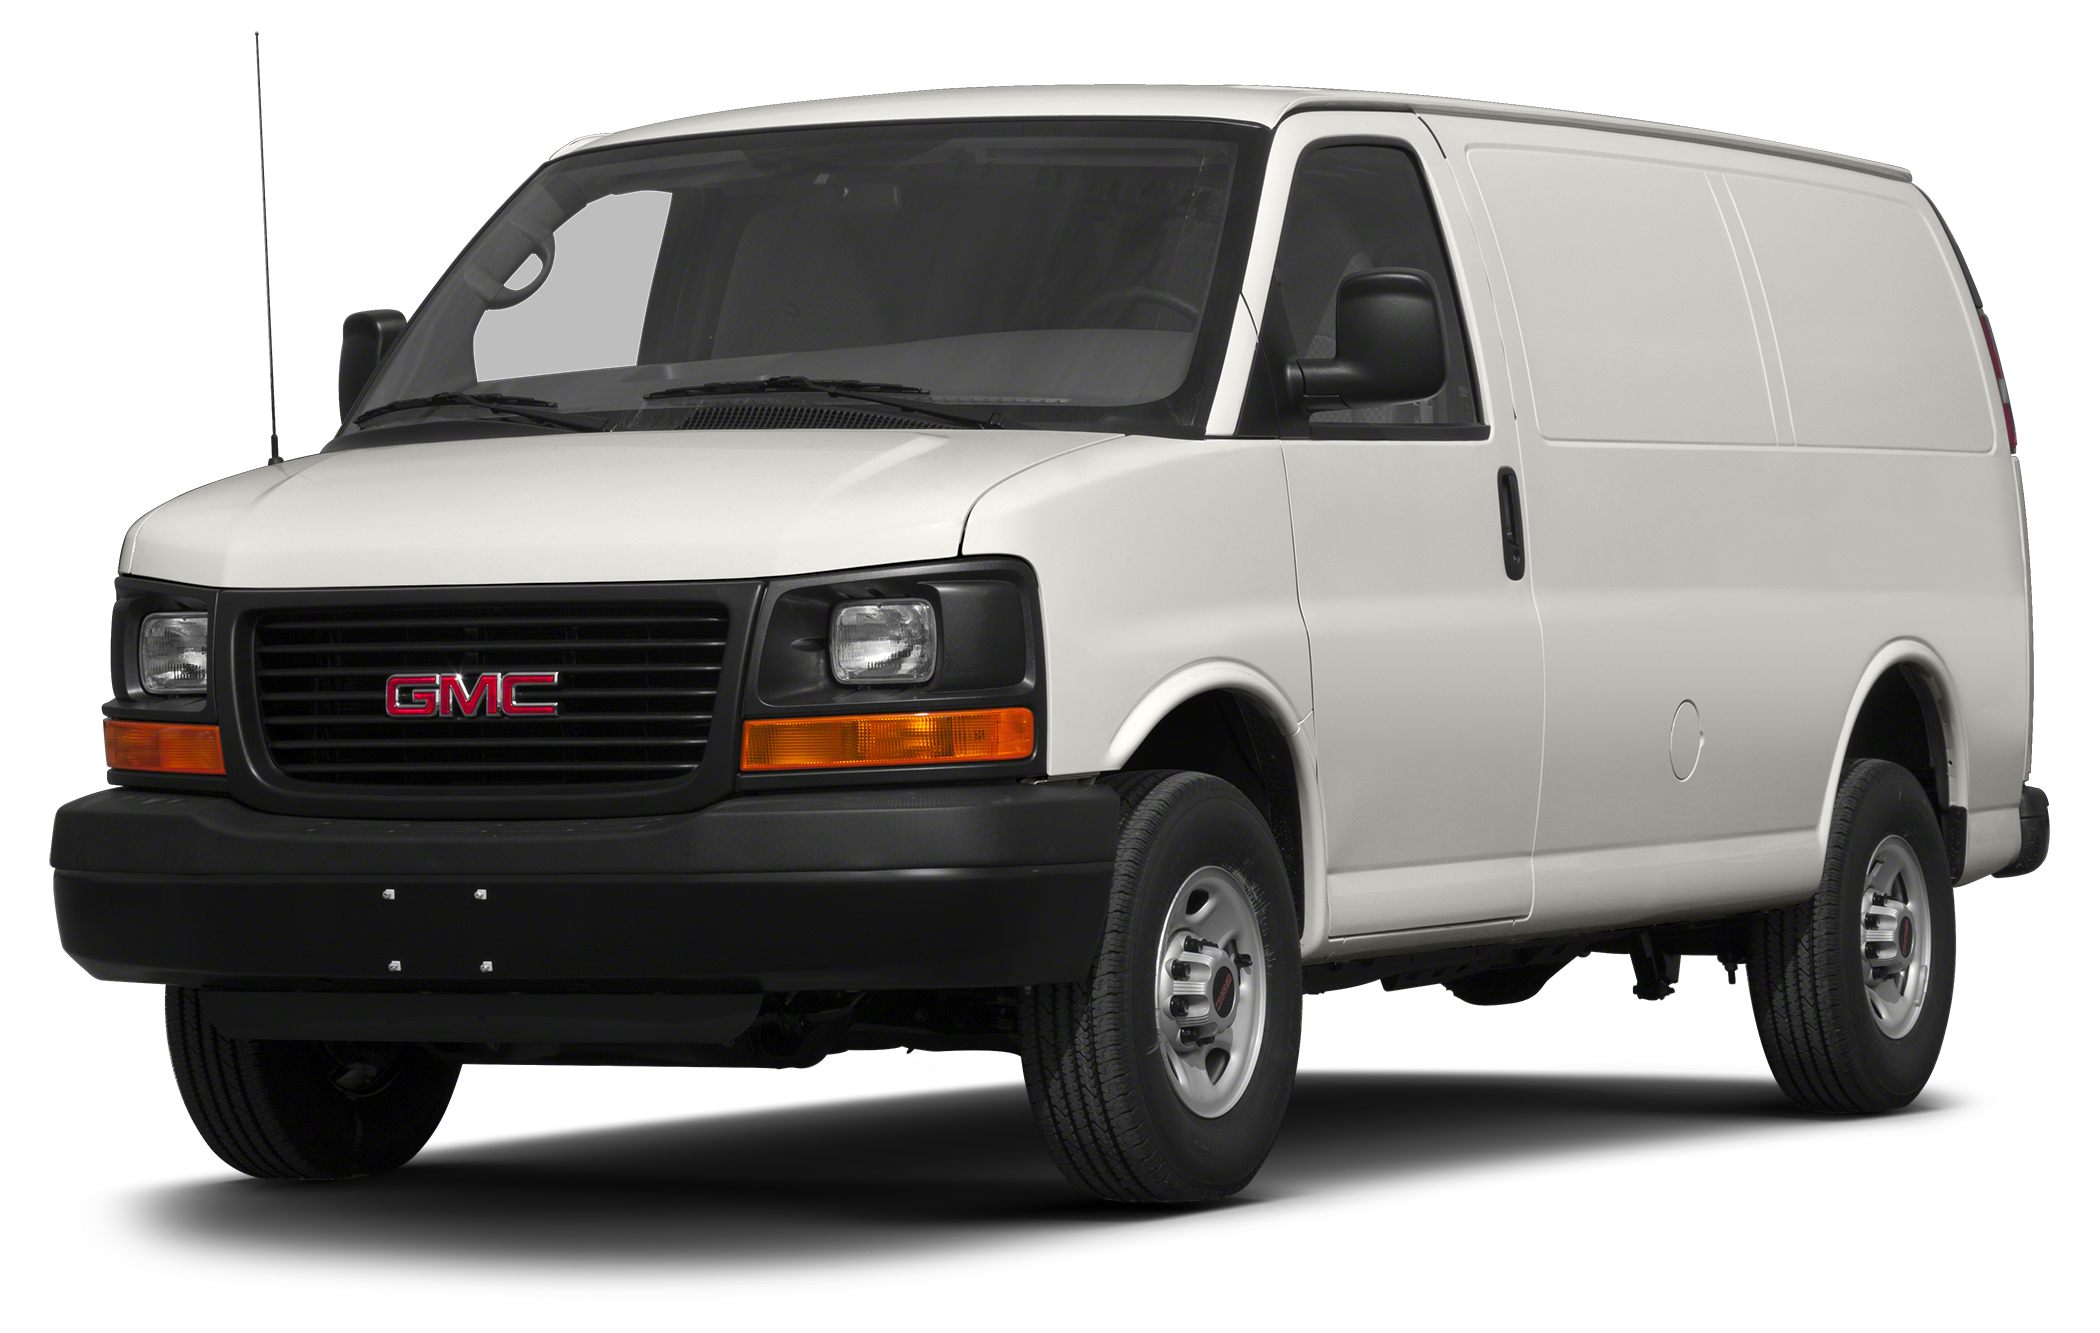 2014 GMC Savana G2500 Work Van Vehicle Detailed Recent Oil Change and Passed Dealer Inspection